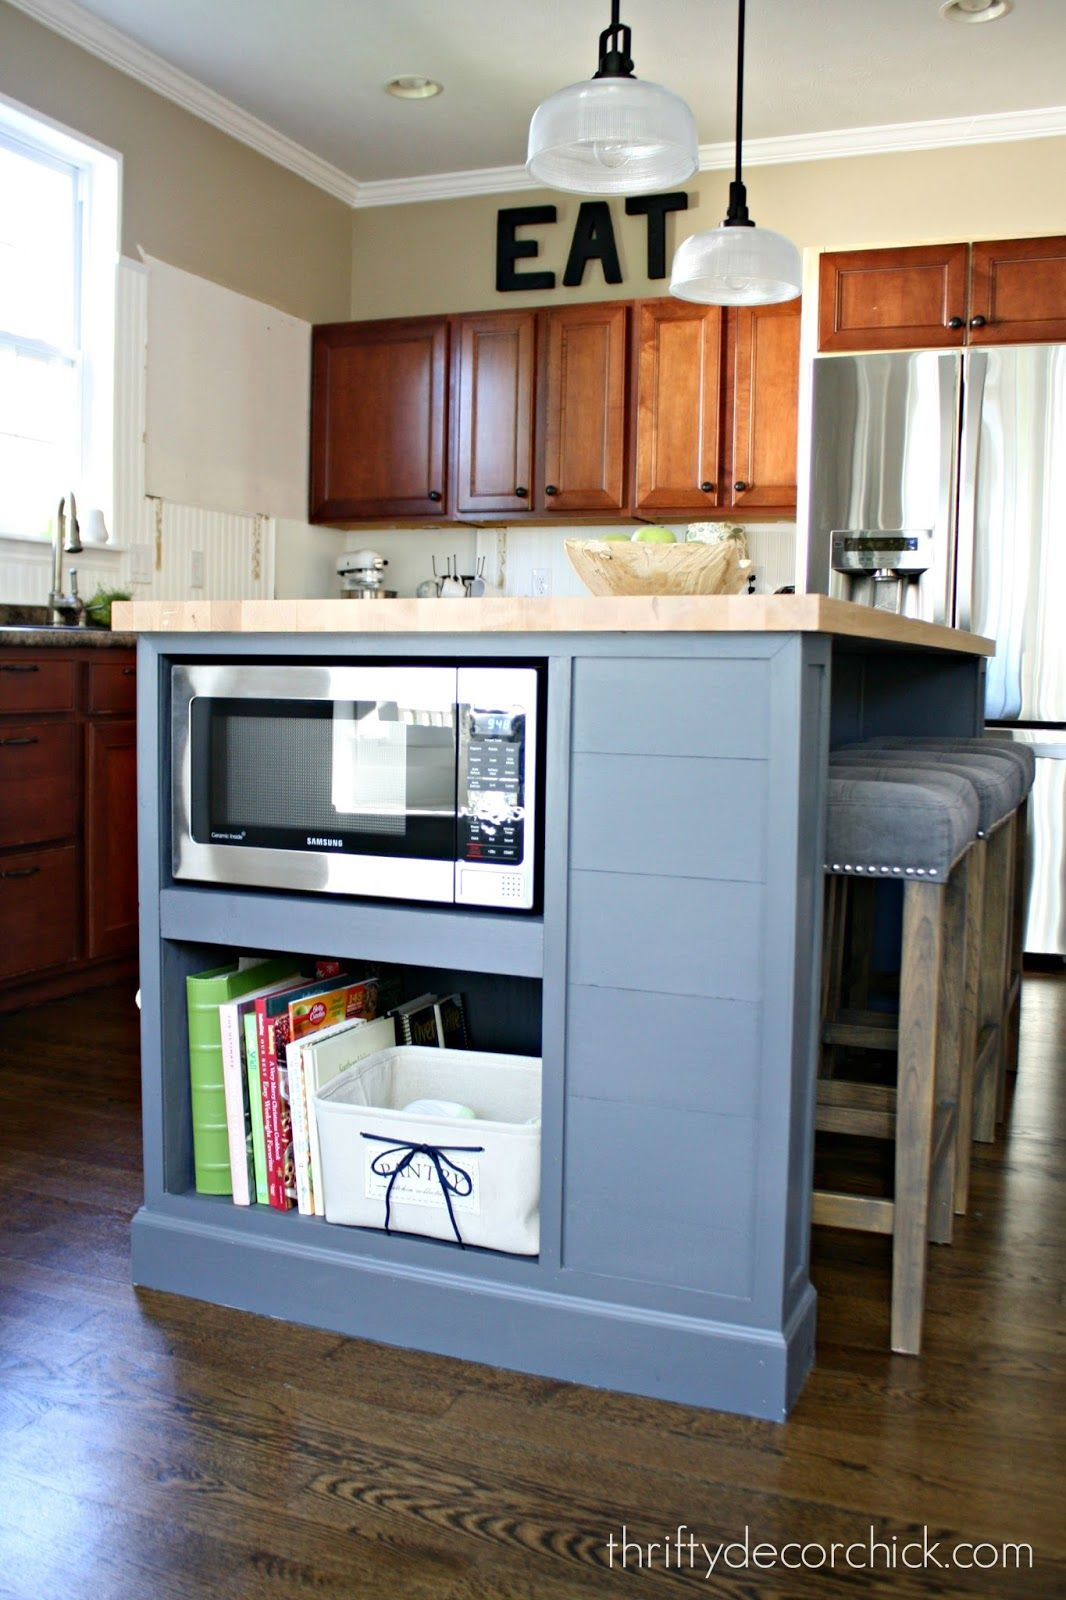 Thrifty Decor Chick Kitchen Island Microwave In The Island! (finally!) | + Diy Life | Kitchen